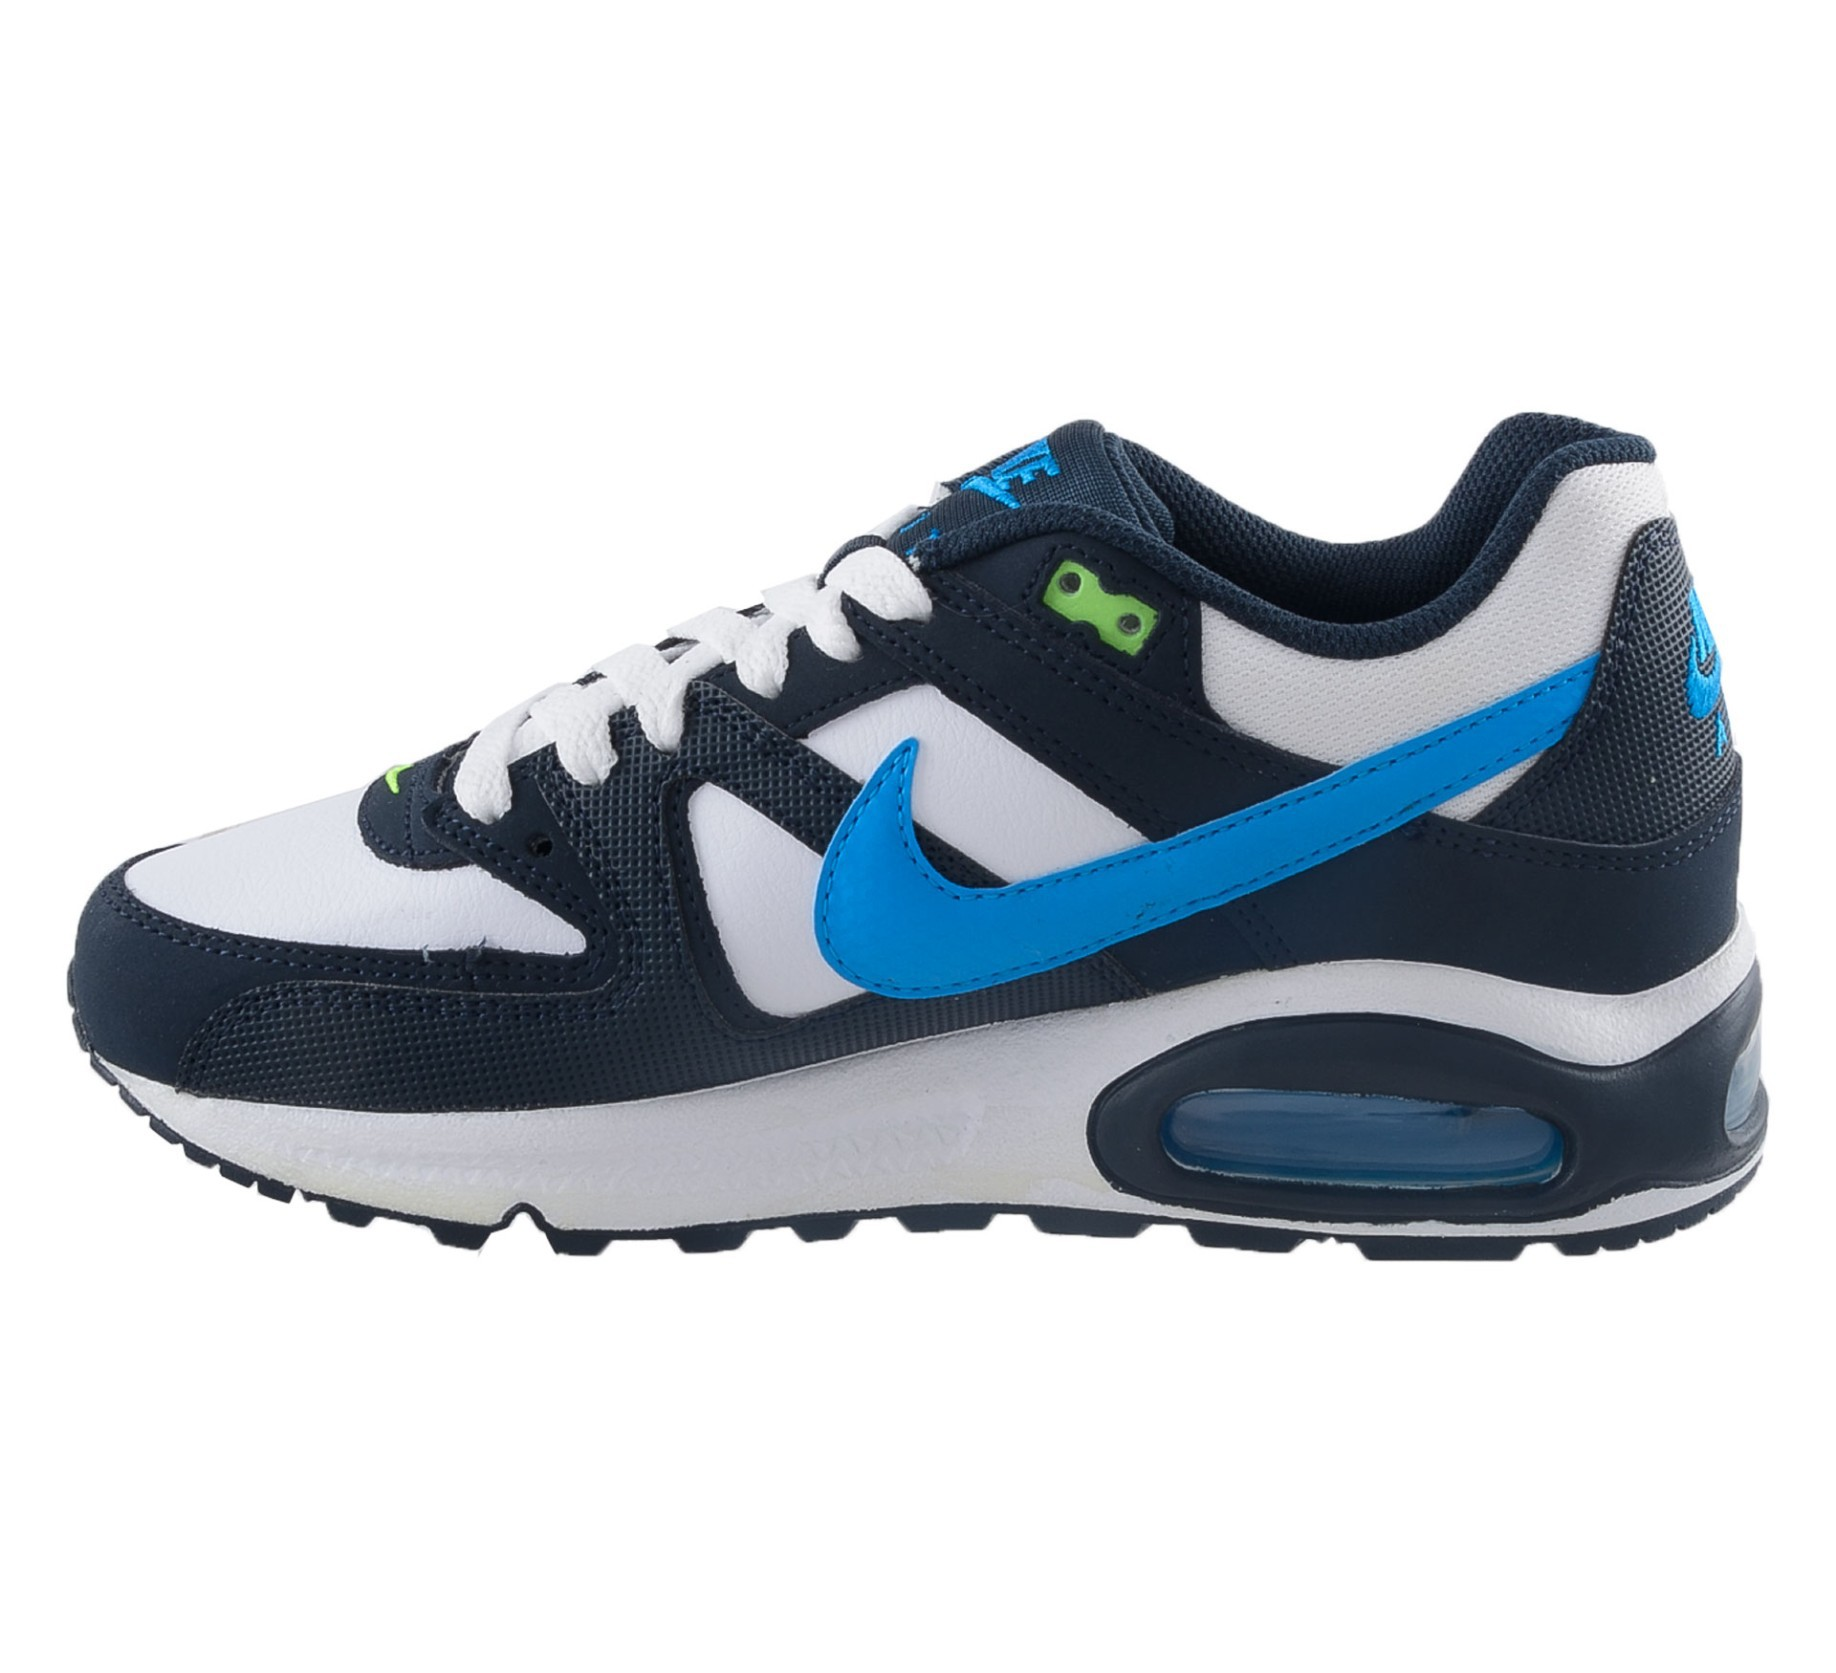 on sale 3fcd3 d4cf5 Baby shoes Nike Air Max Command GS colore White Blue - Nike - SportIT.com